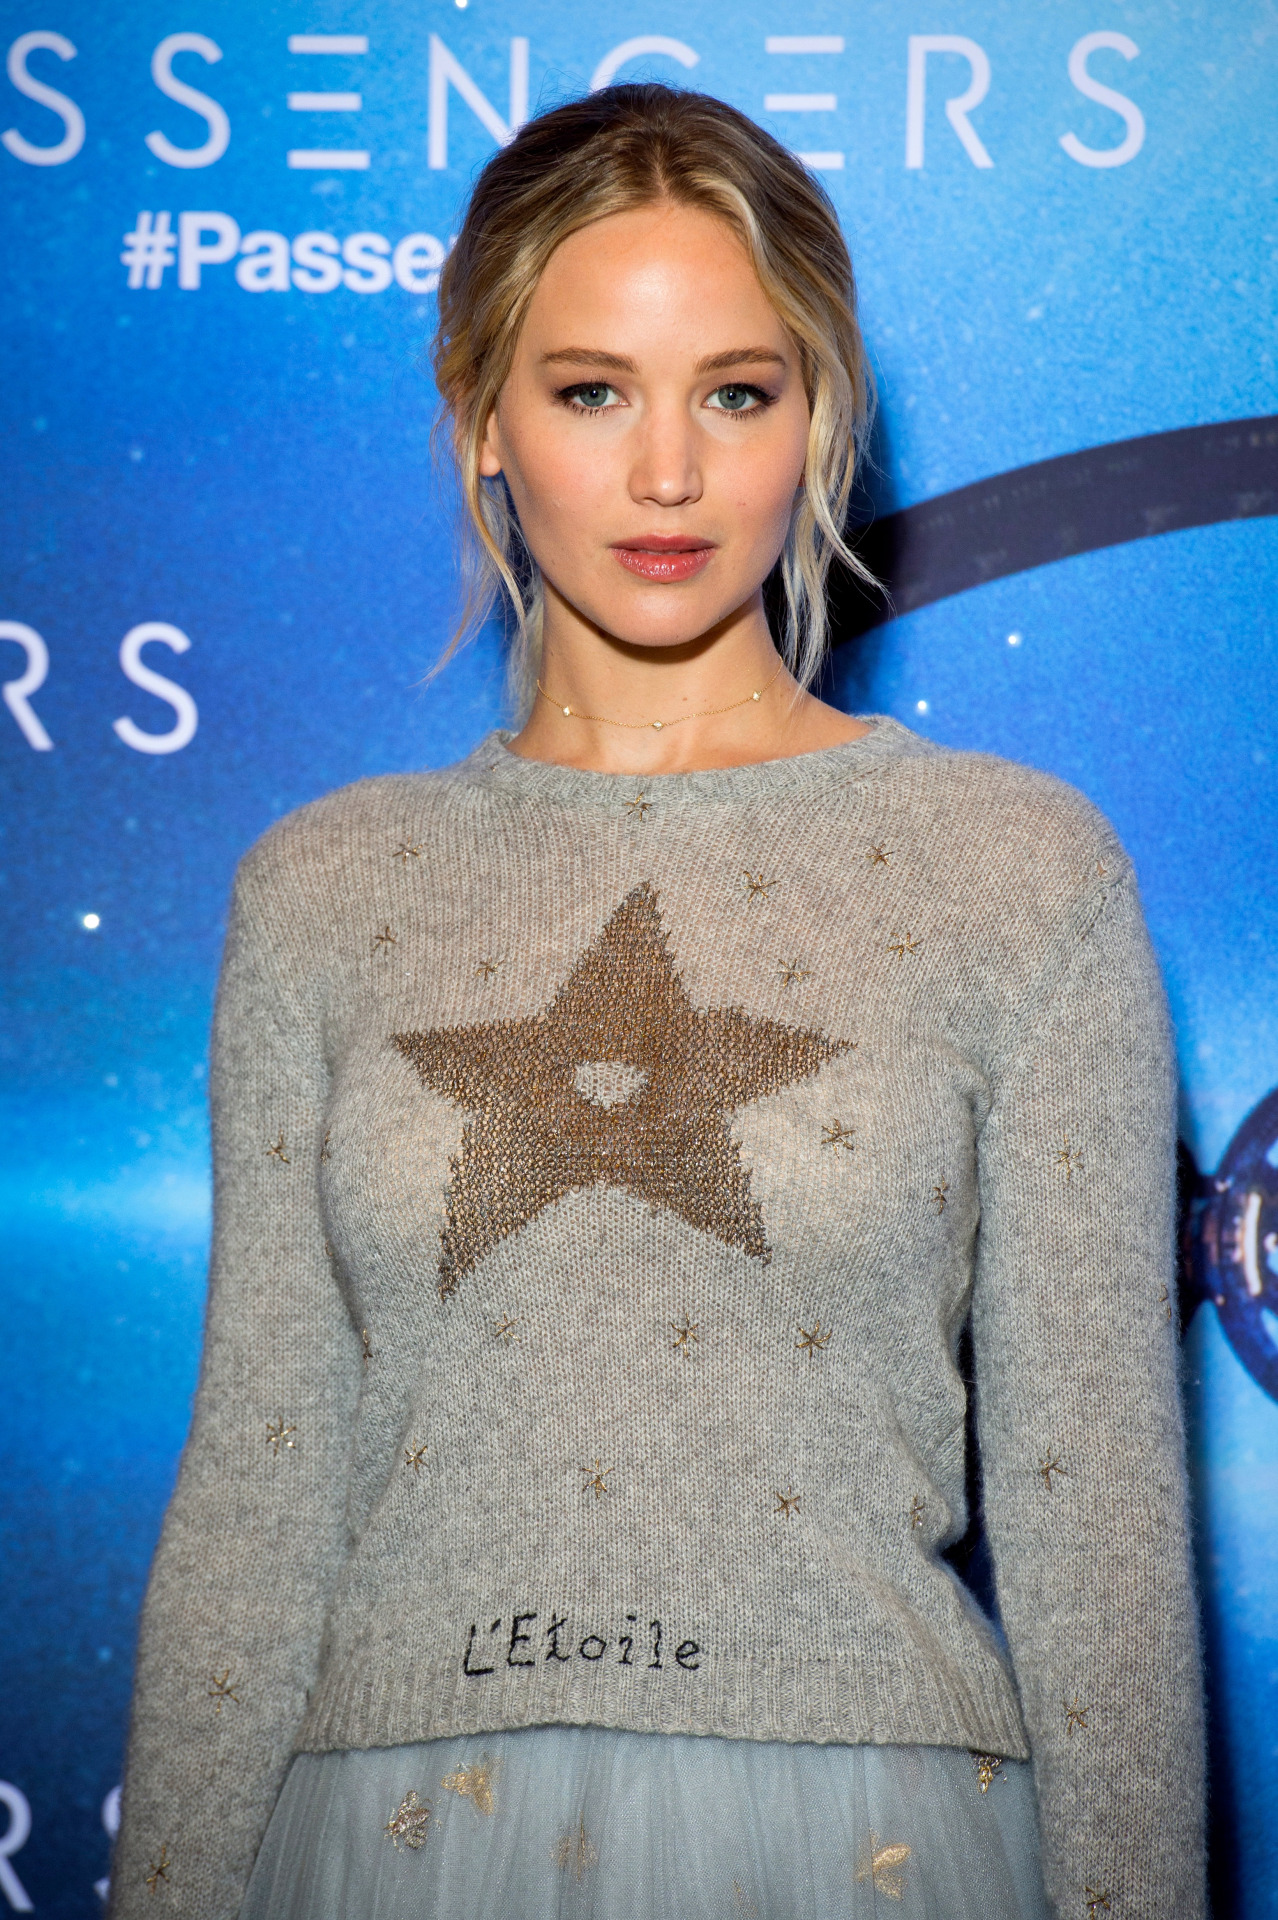 JLaw Jennifer Lawrence actress pulli Bewbs!